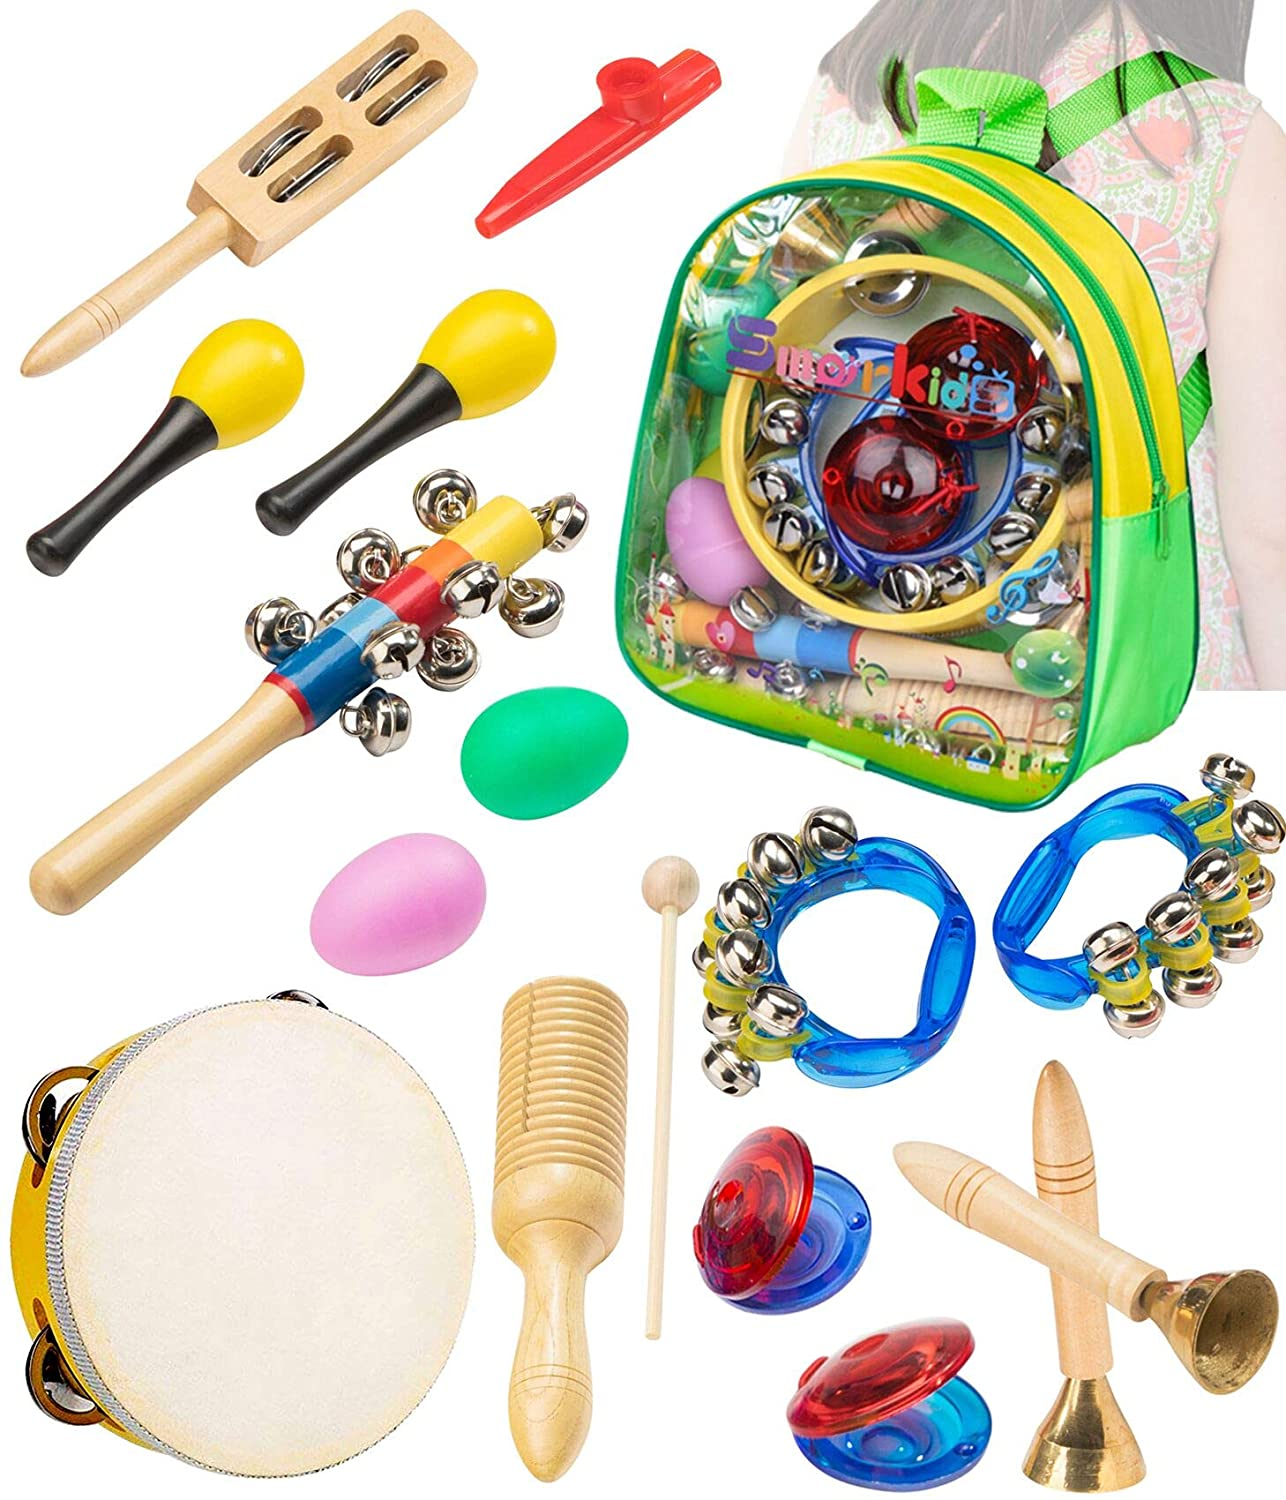 Musical Instrument Wooden Handle Percussion Toy For Kids Learning Music 8C